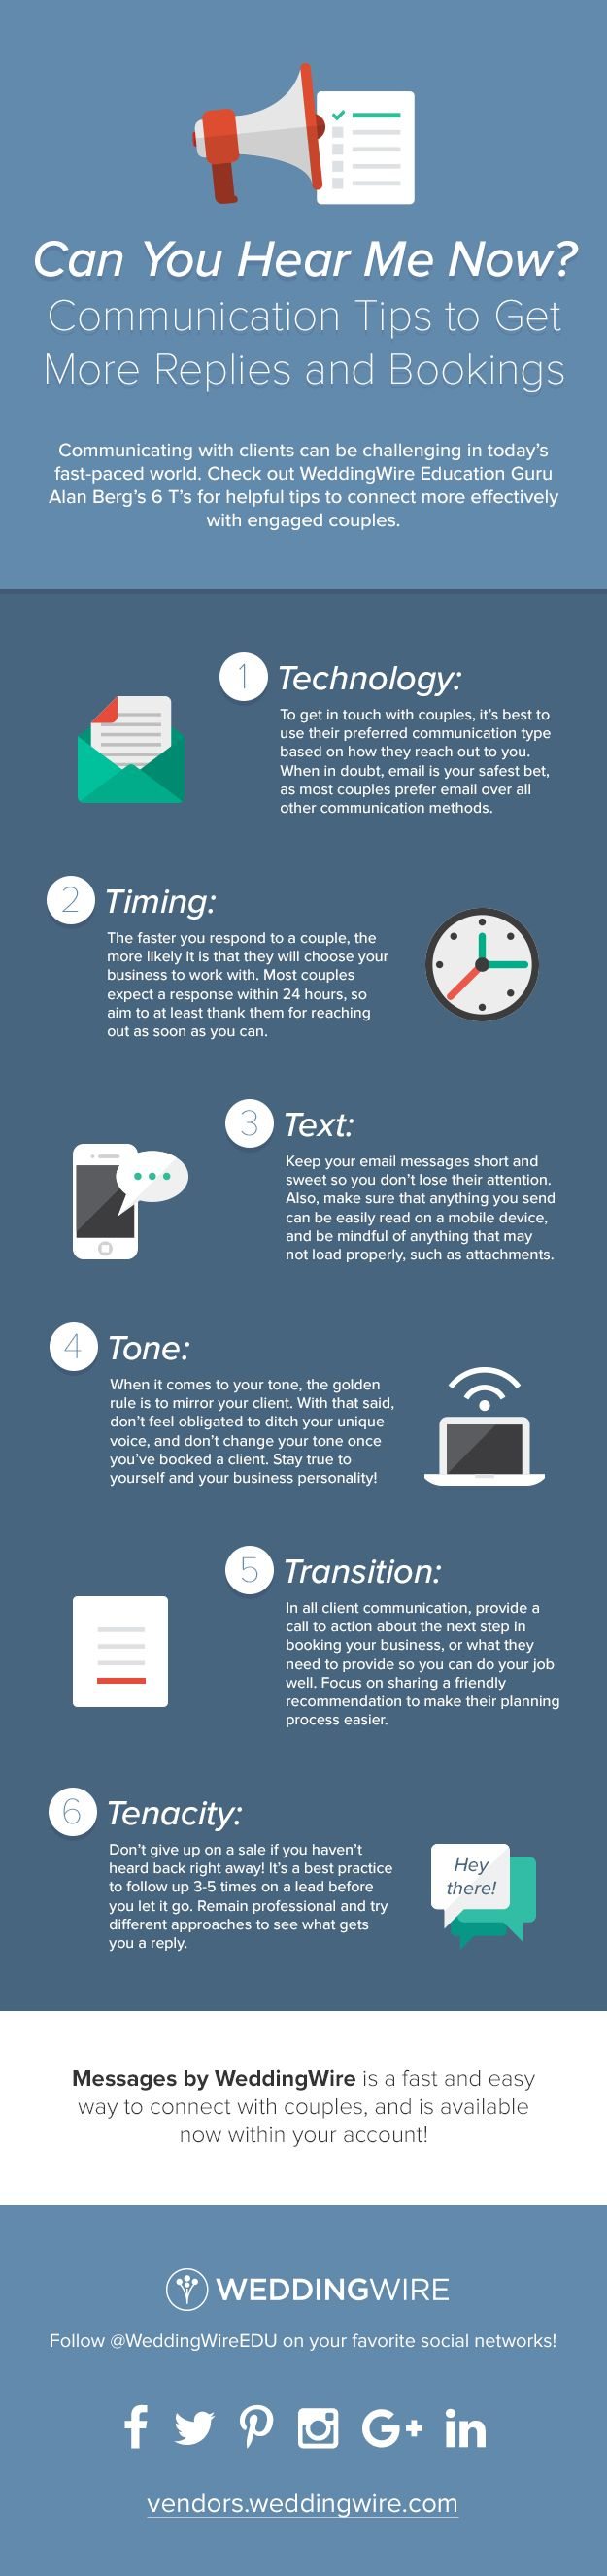 Can You Hear Me Now? Client Communication Tips #Infographic